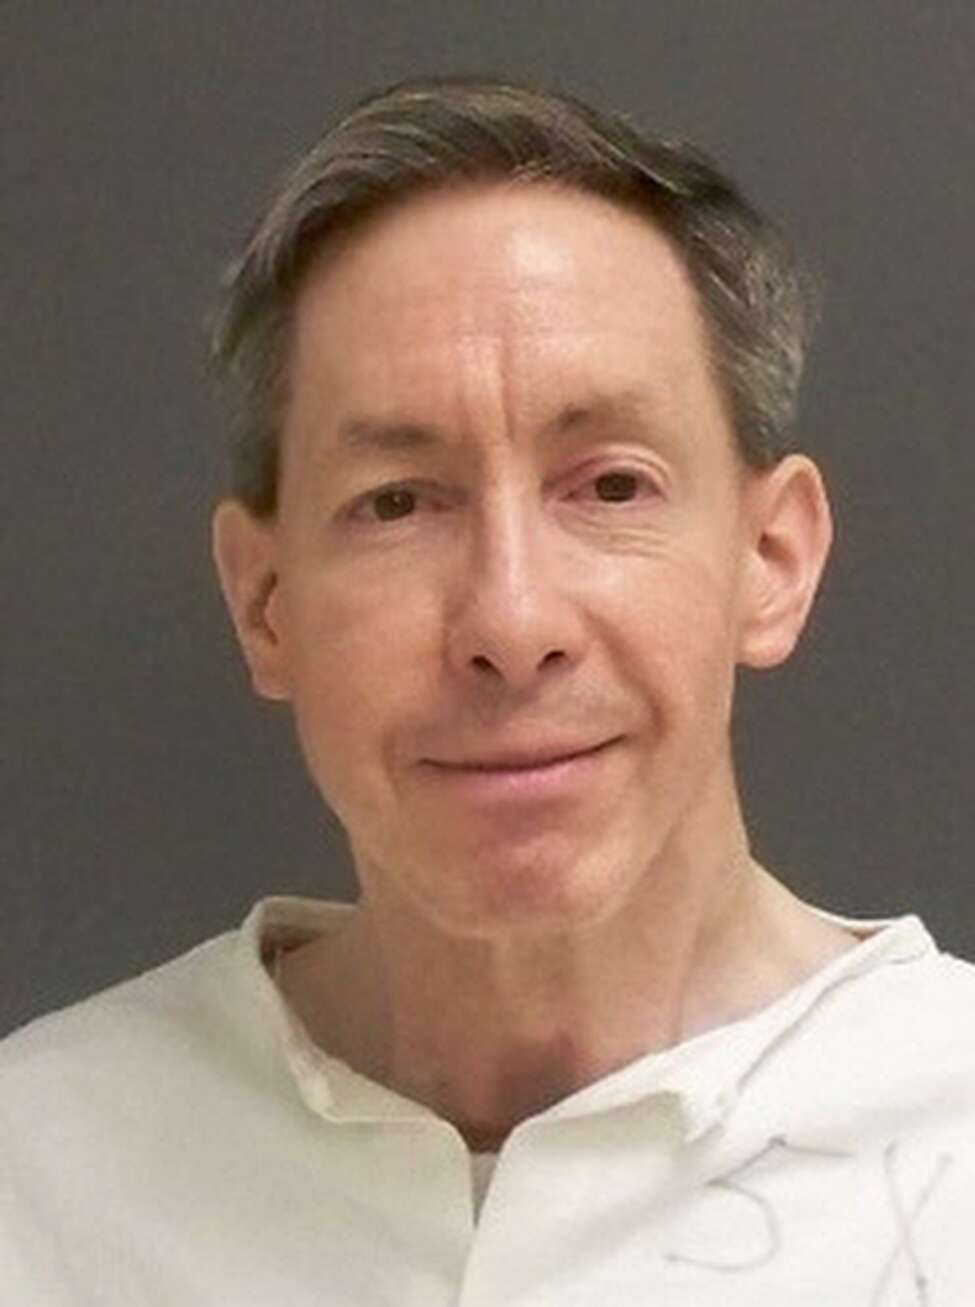 A Utah lawmaker argues that law, and the legacy of raids in the 1950s, has created a culture of fear that empowers notorious abusers like the polygamous leader Warren Jeffs, shown above. He is now serving a life prison sentence in Texas for sexually assaulting girls he considered plural wives.